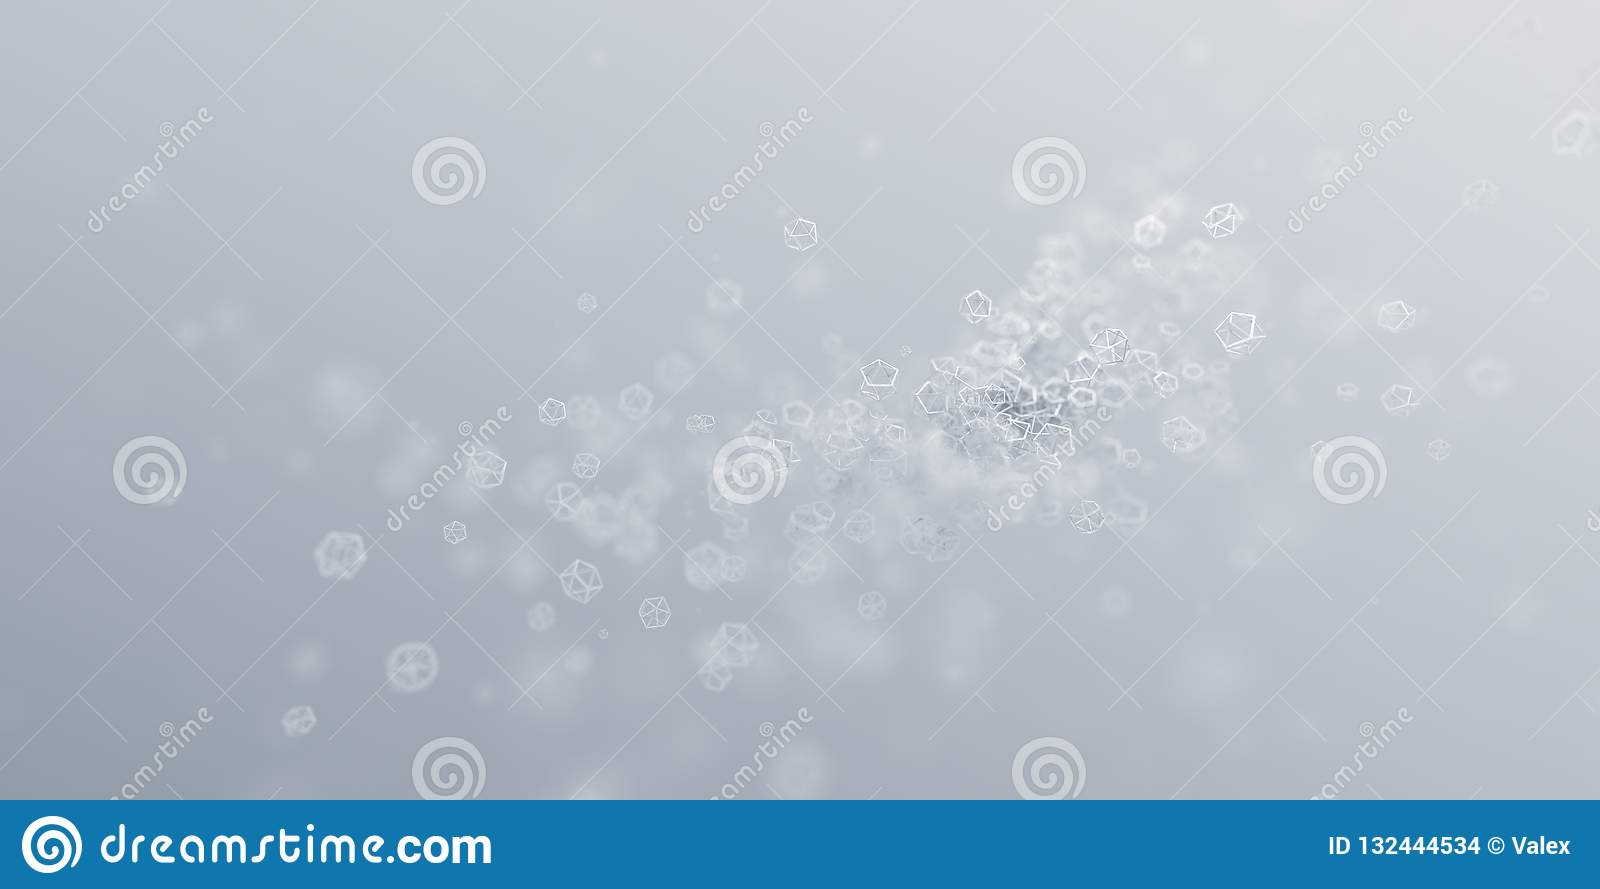 Abstract 3D Rendering of a Modern Background